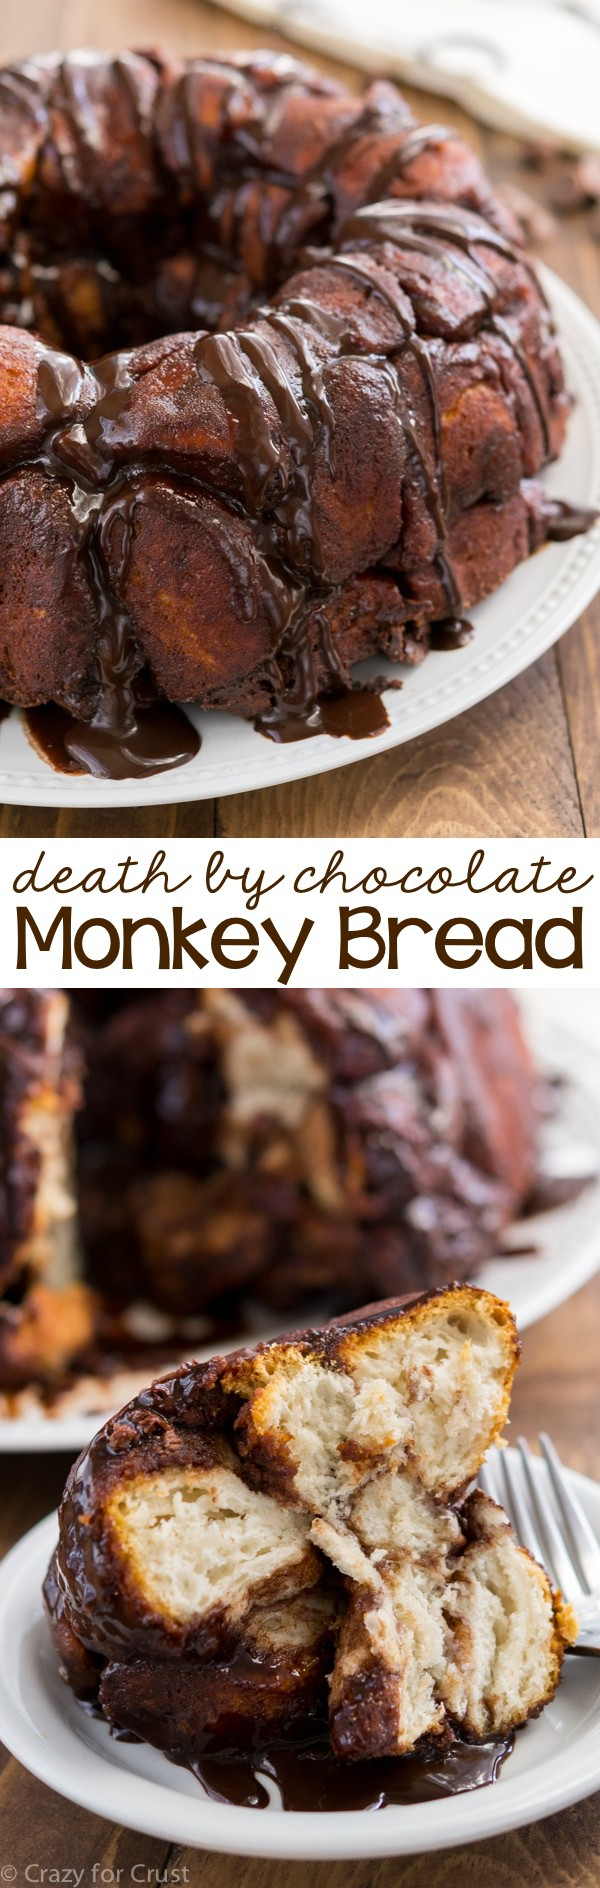 This Chocolate Monkey Bread is the BEST easy brunch recipe! Make it for breakfast or dessert and get your chocolate fill.